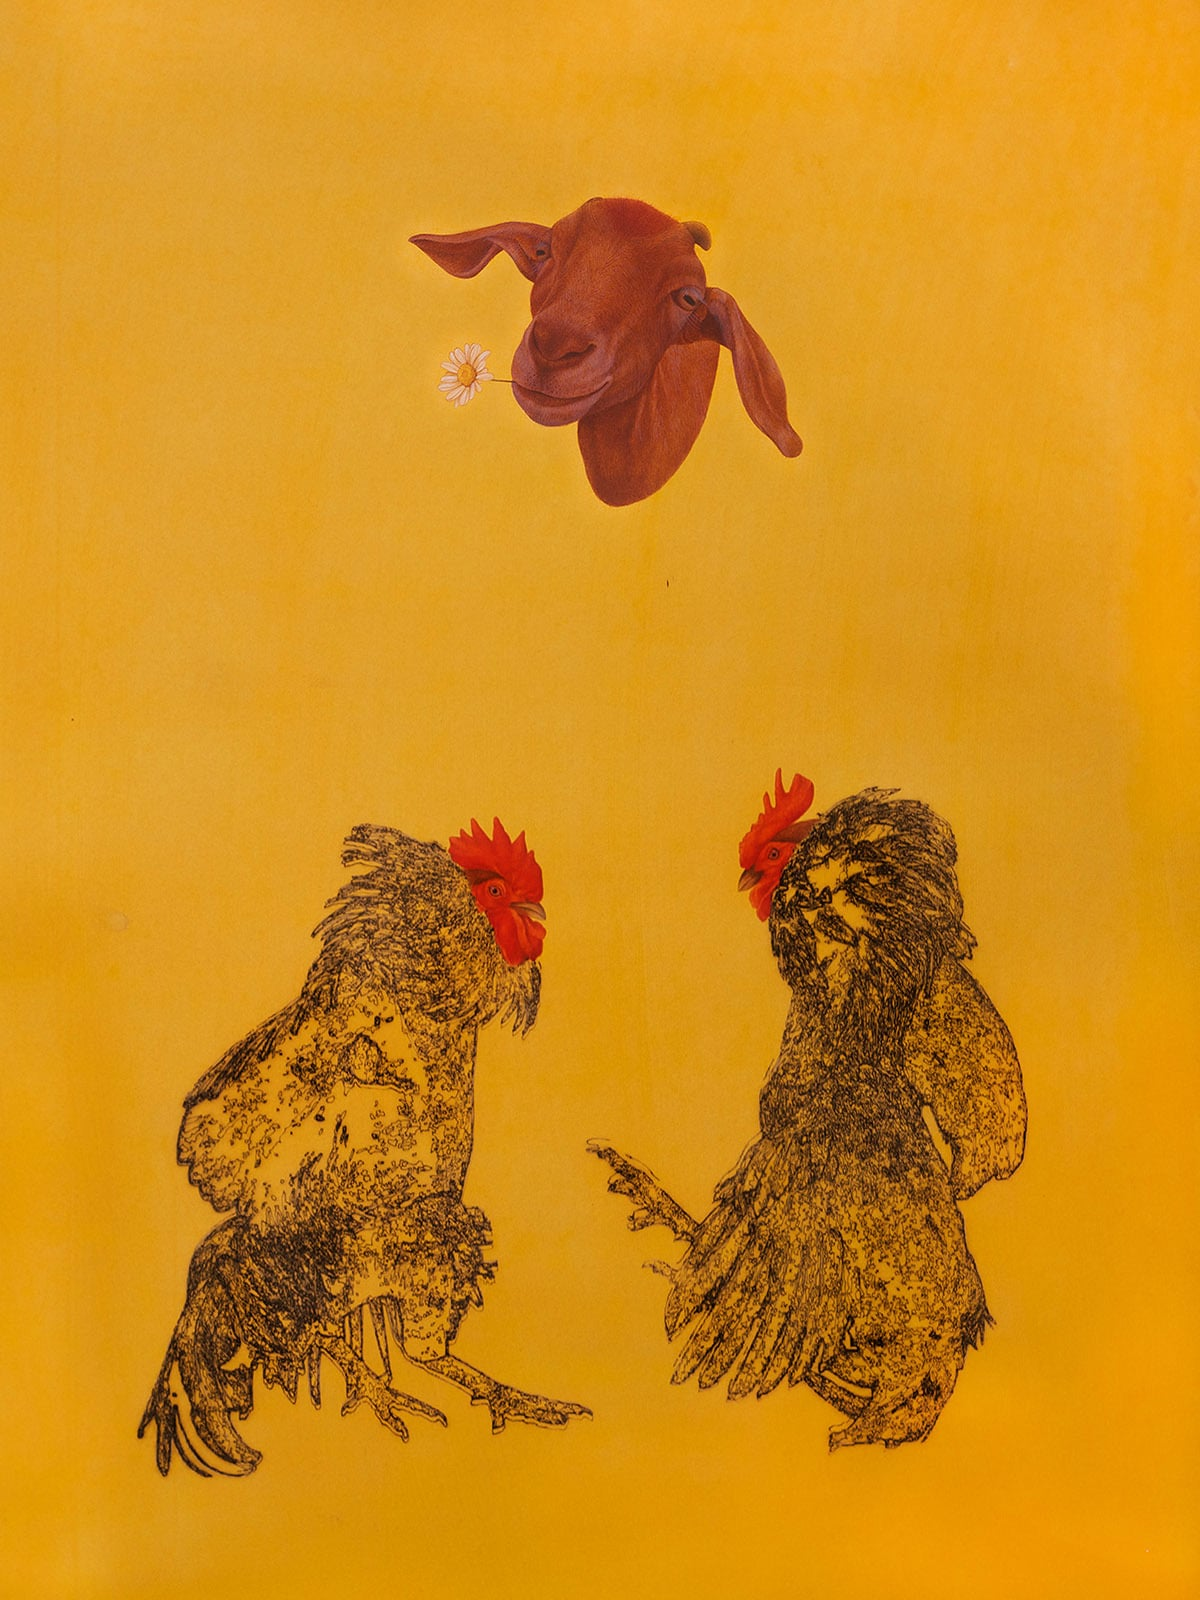 Two Cocks  and a Goat | Muhammad Zeeshan (Laser scoring and gouache on wasli)